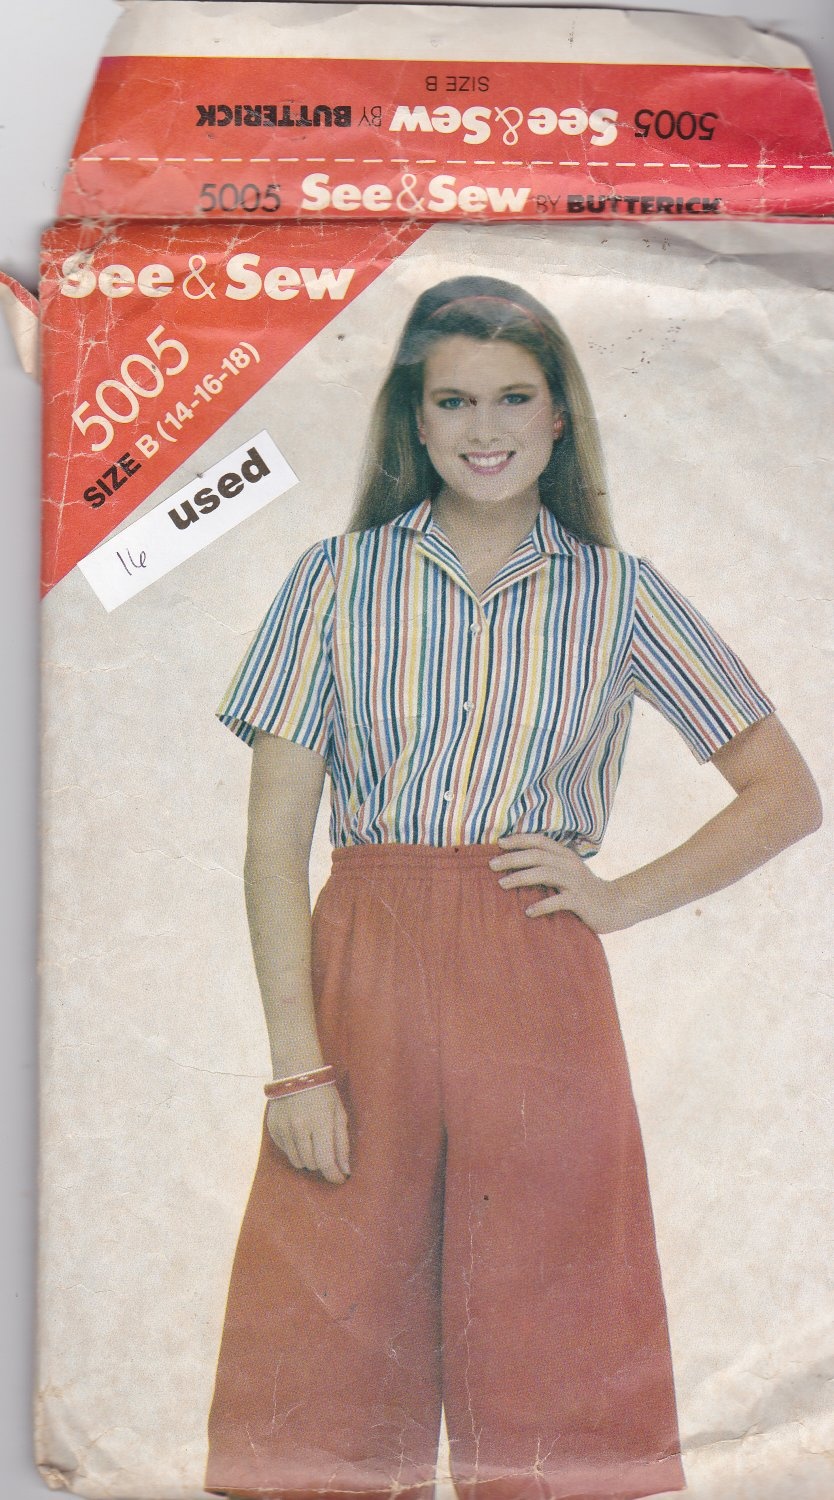 Butterick See and Sew 5005 size 16, may be missing pieces, 50 cents plus shipping